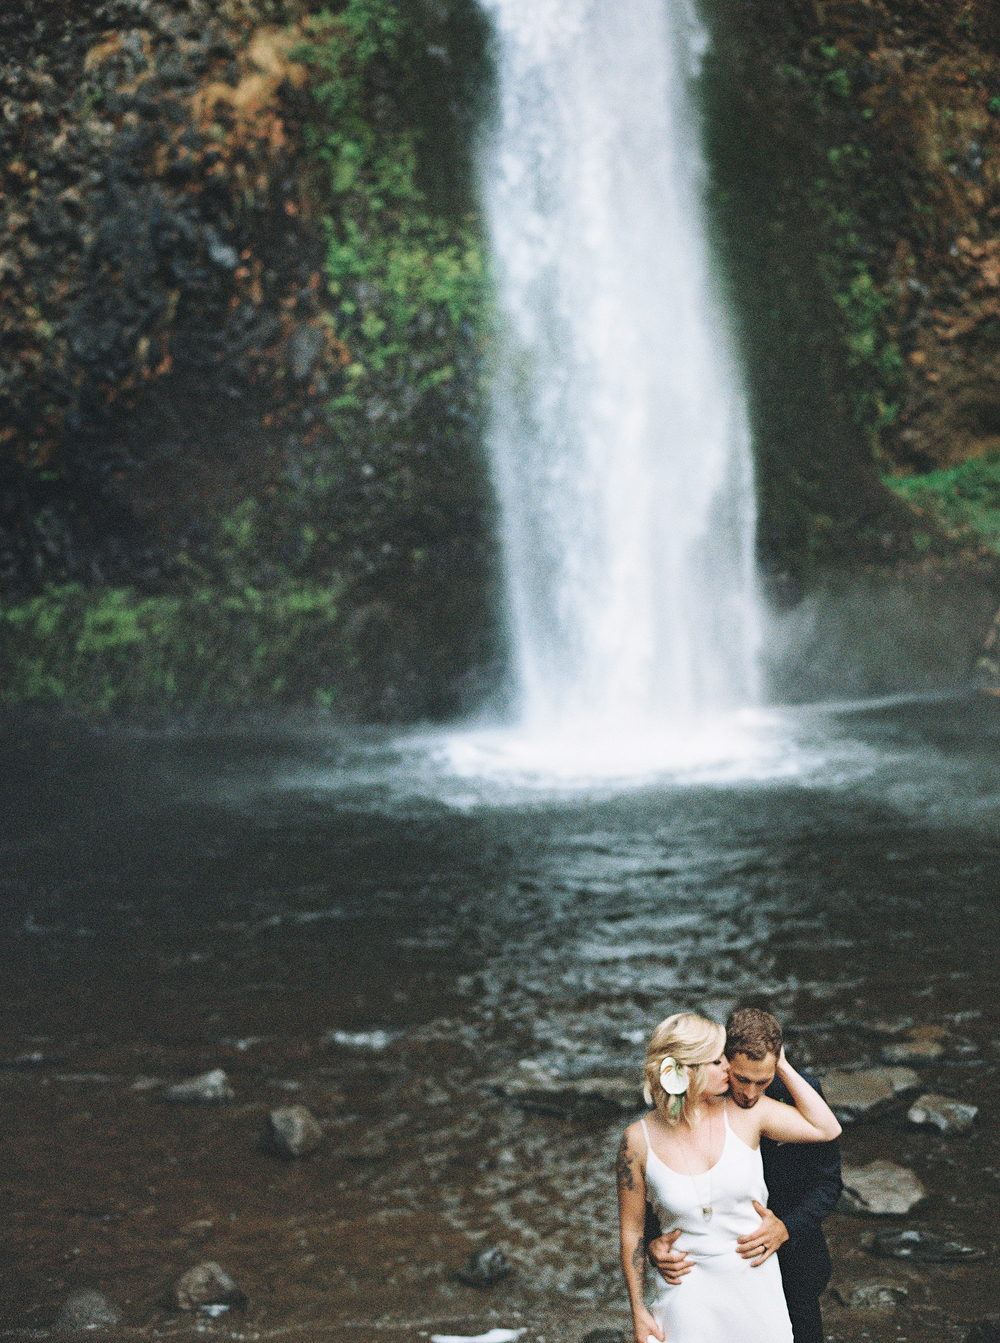 055Outlive+Creative+Tropical+Northwest+Columbia+Gorge+Elopement+Film+Photographer.jpg